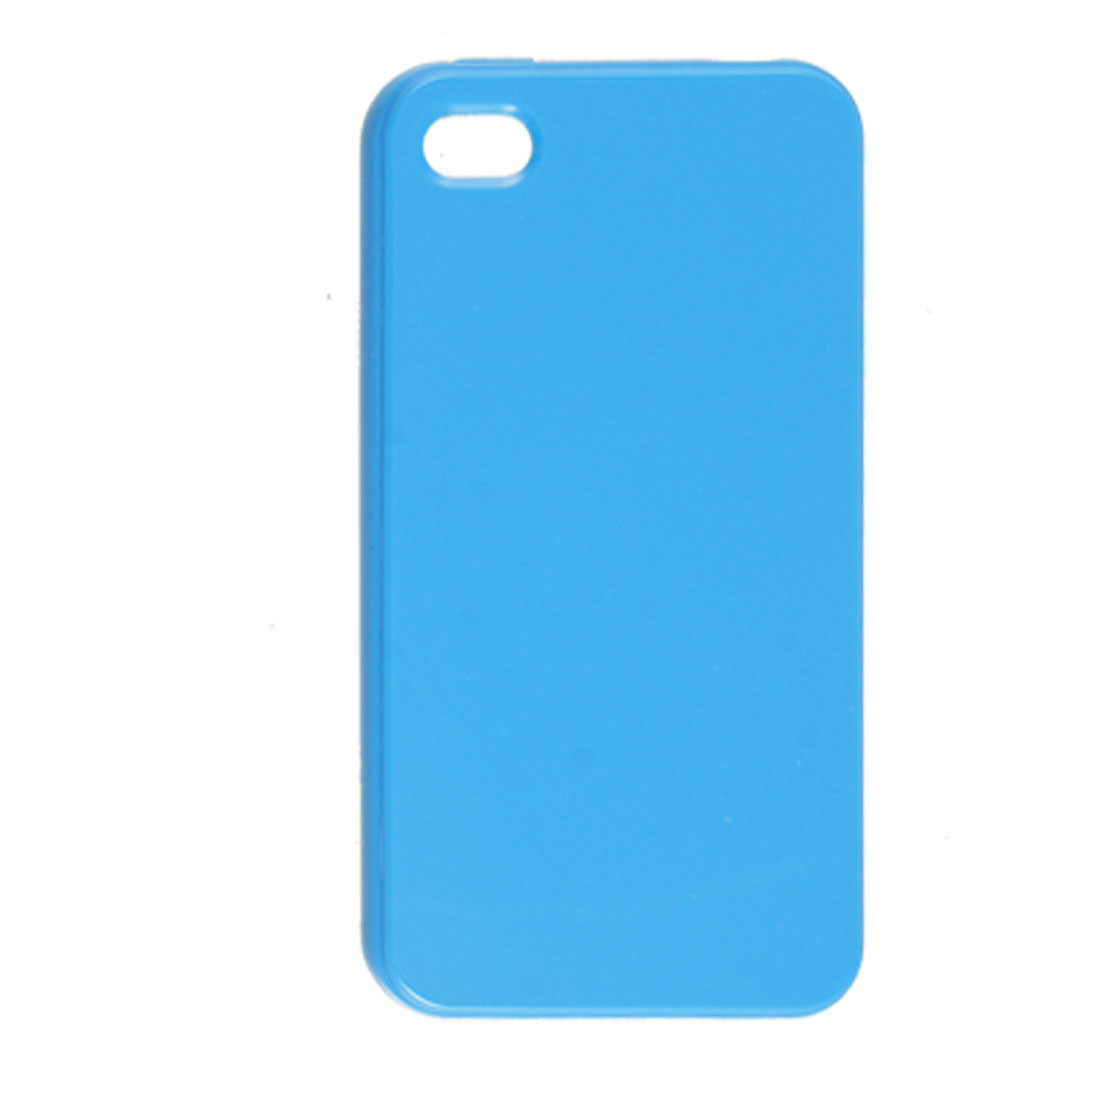 Anti Dust Sky Blue Soft Plastic Cover Case for Apple iPhone 4 4G